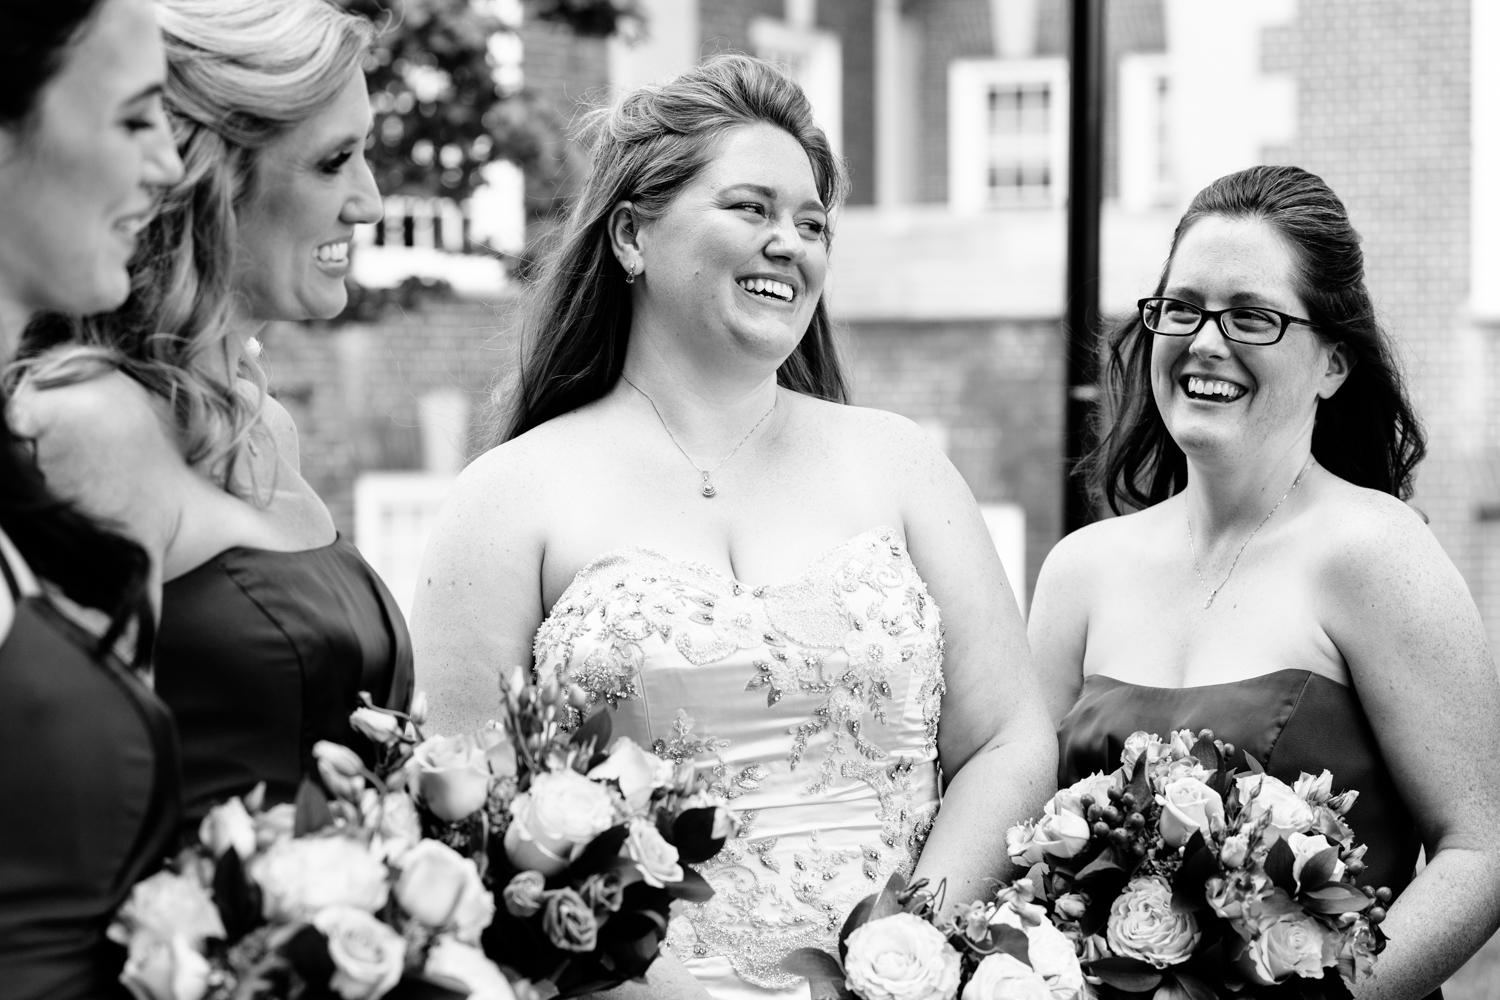 Black and white image of bride laughing with bridesmaids.